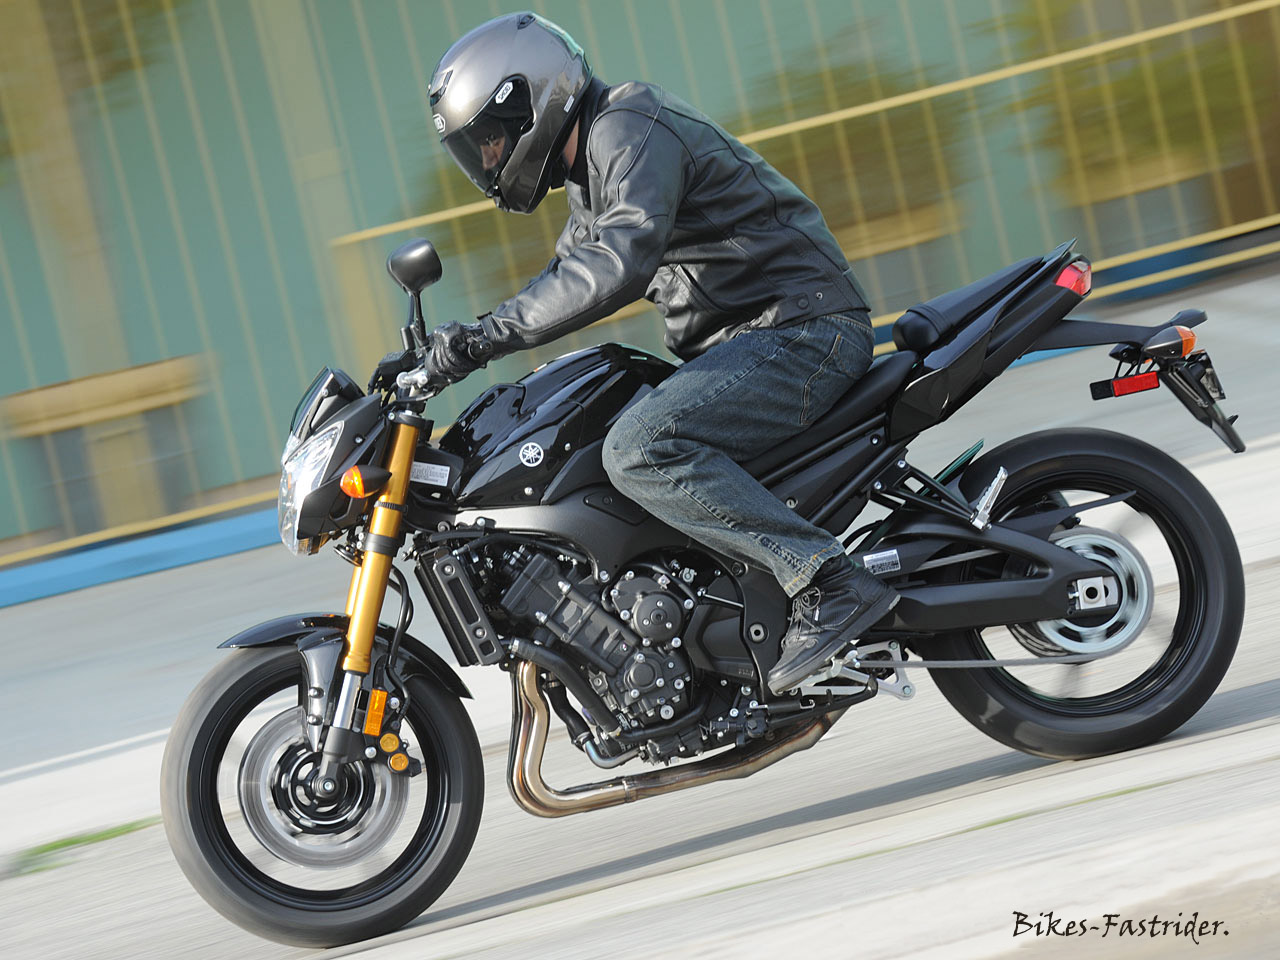 Extreme Machines.: 2011 Yamaha FZ8 Test-ride and Review.